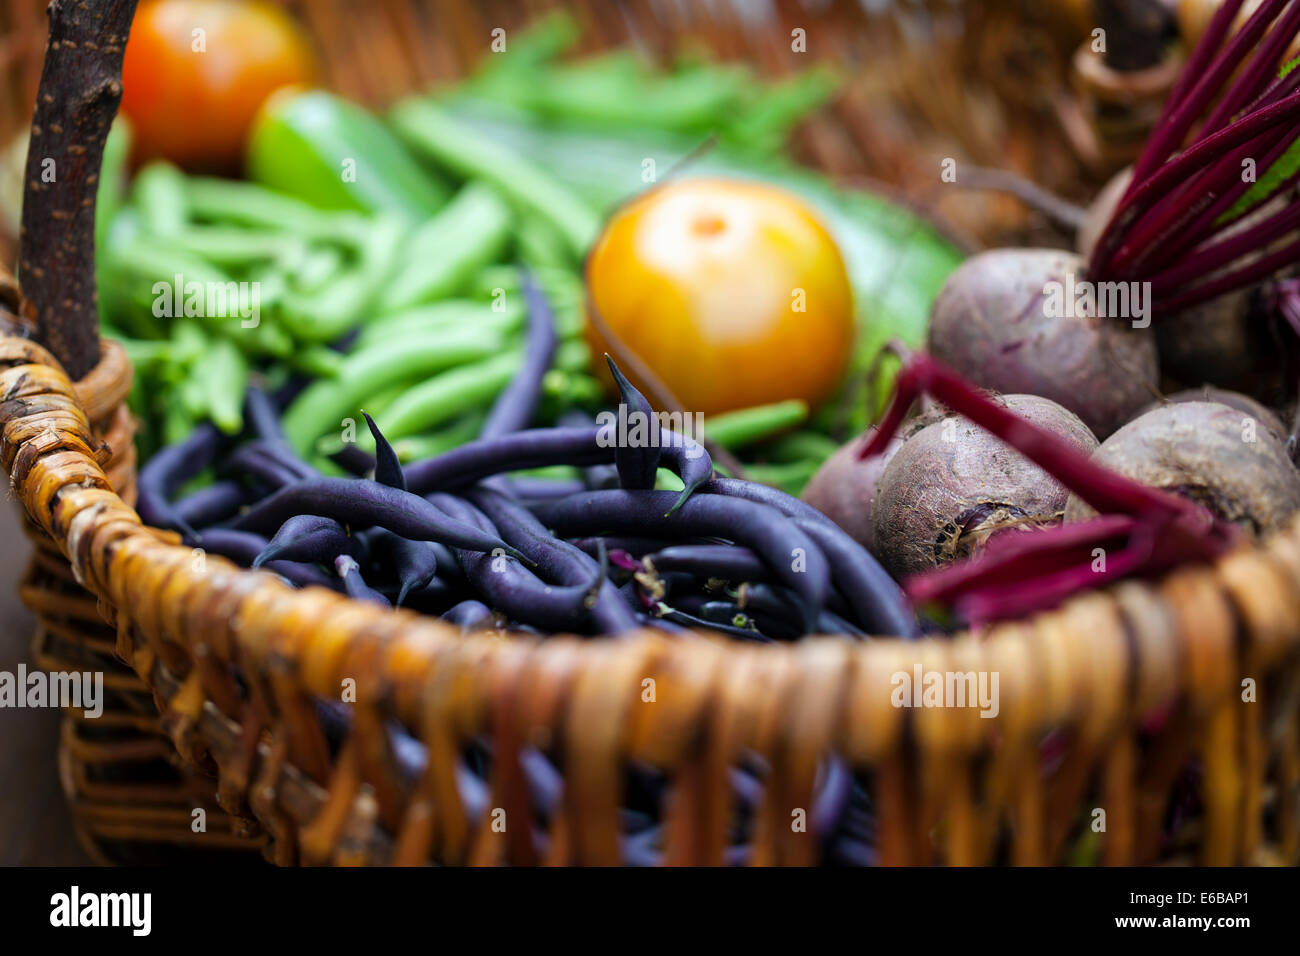 Vegetables in the wicker basket - Stock Image